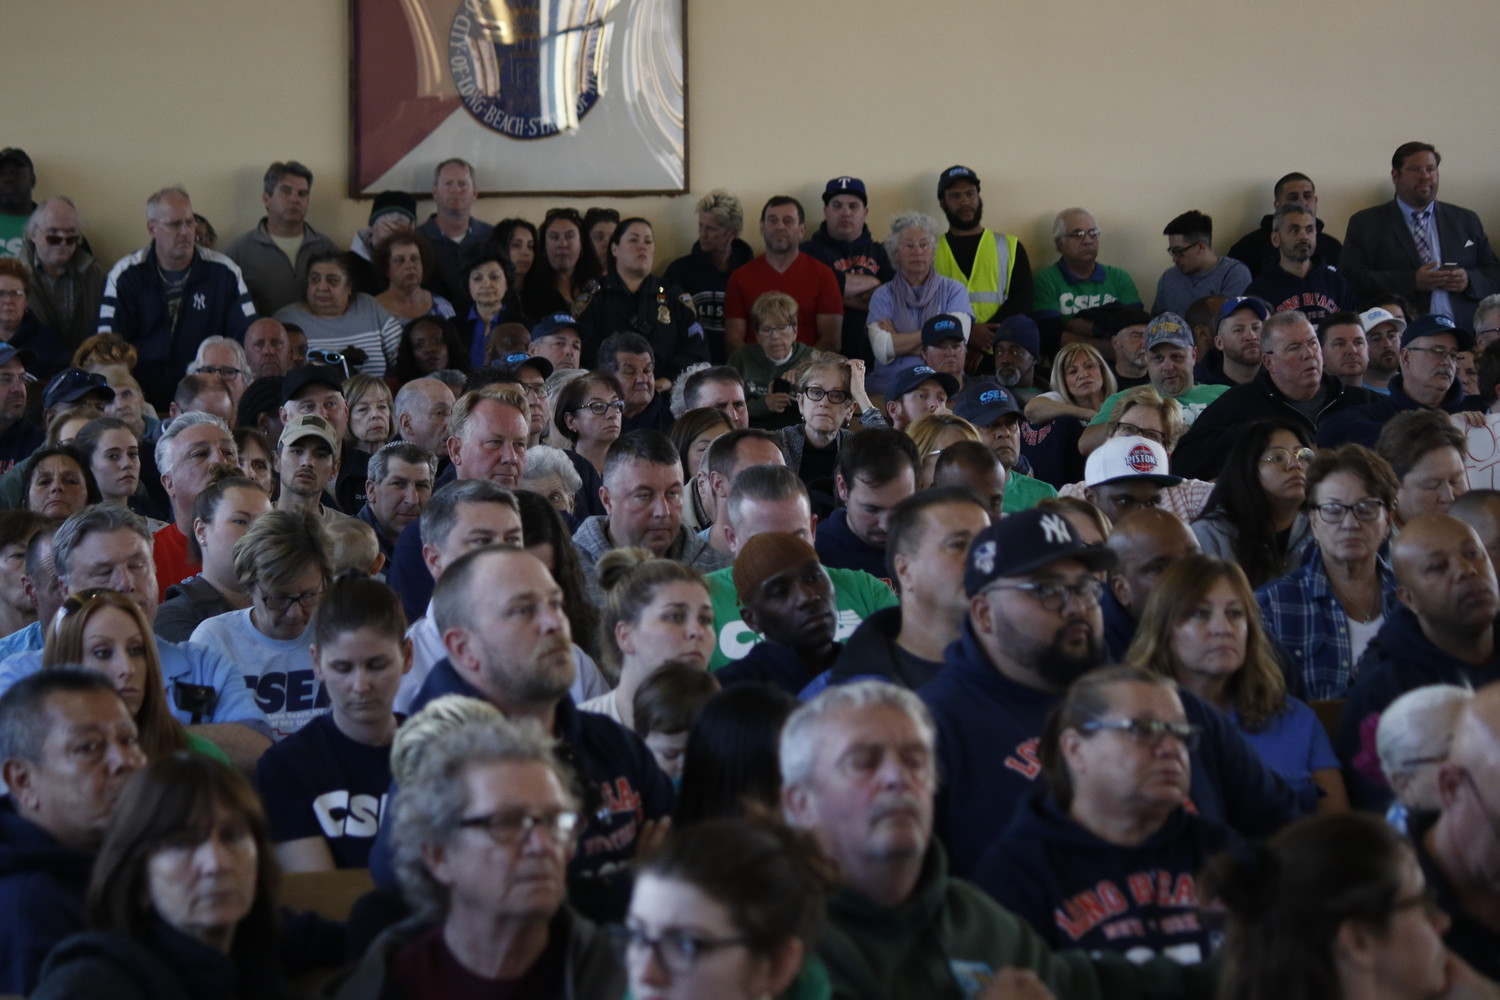 Hundreds of residents, union members and their supporters packed City Hall on Tuesday, where they criticized city officials over a possible tax hike, layoffs and service cuts.